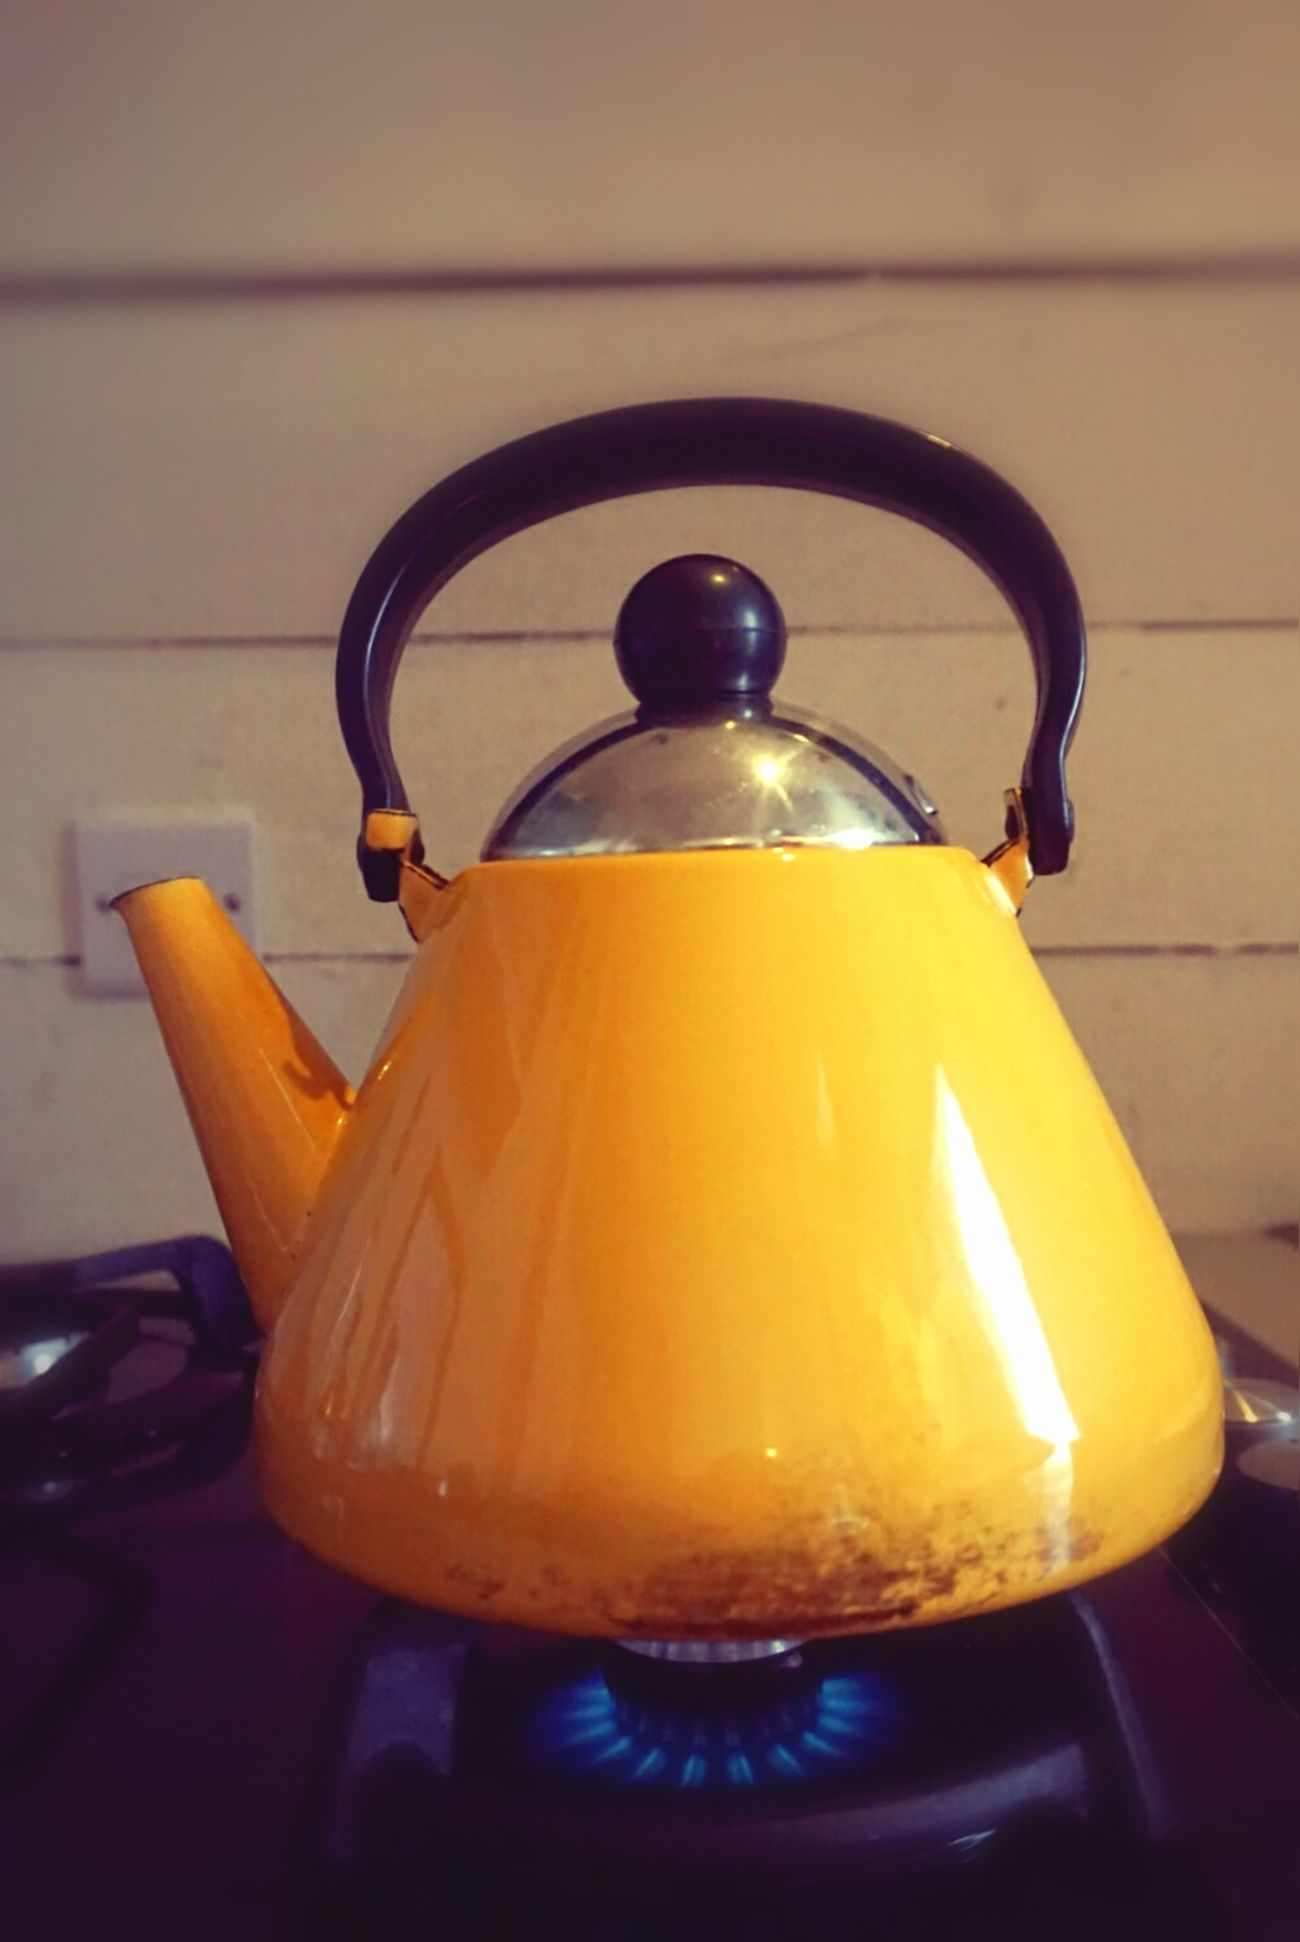 Teapot Teapot Shot Yellow Flame Whistling Kettle Tea Time For Tea Time For Yourself Yorkshire Tea Brew Cuppatea <3 Relaxation Feelslikehome Glamping Powys Cabancrwn Wales